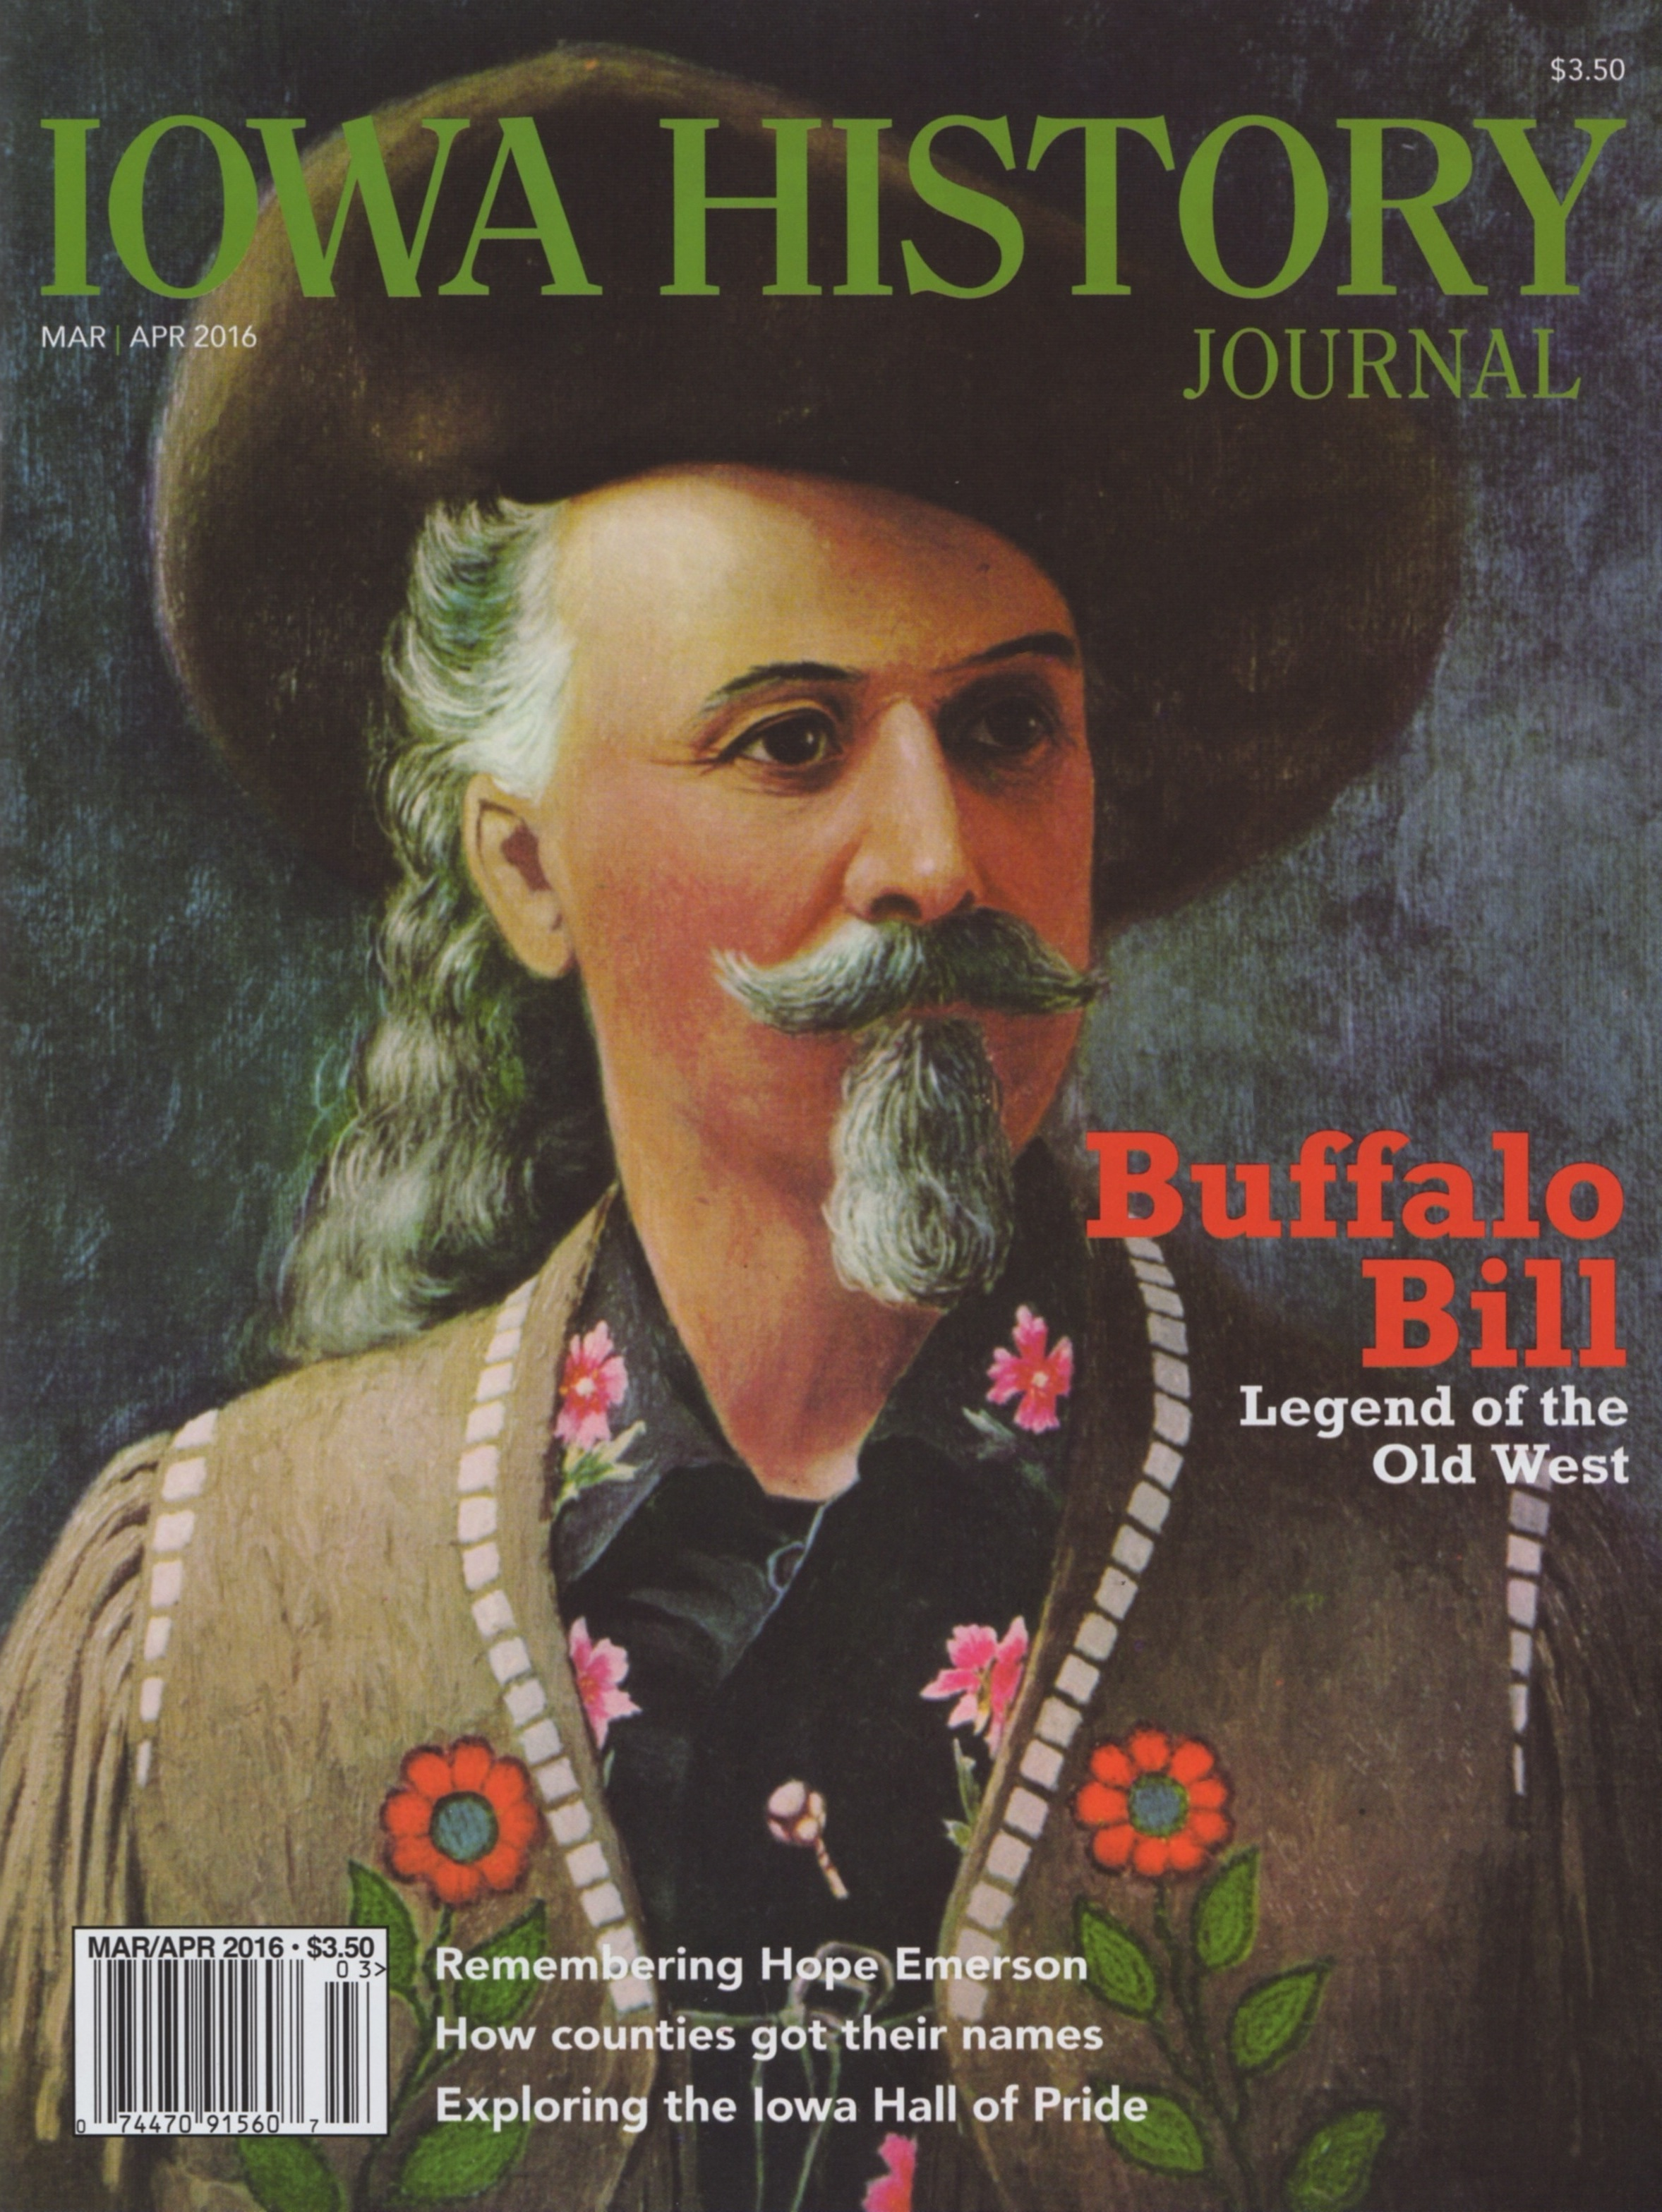 Volume 8, Issue 2  - Buffalo Bill